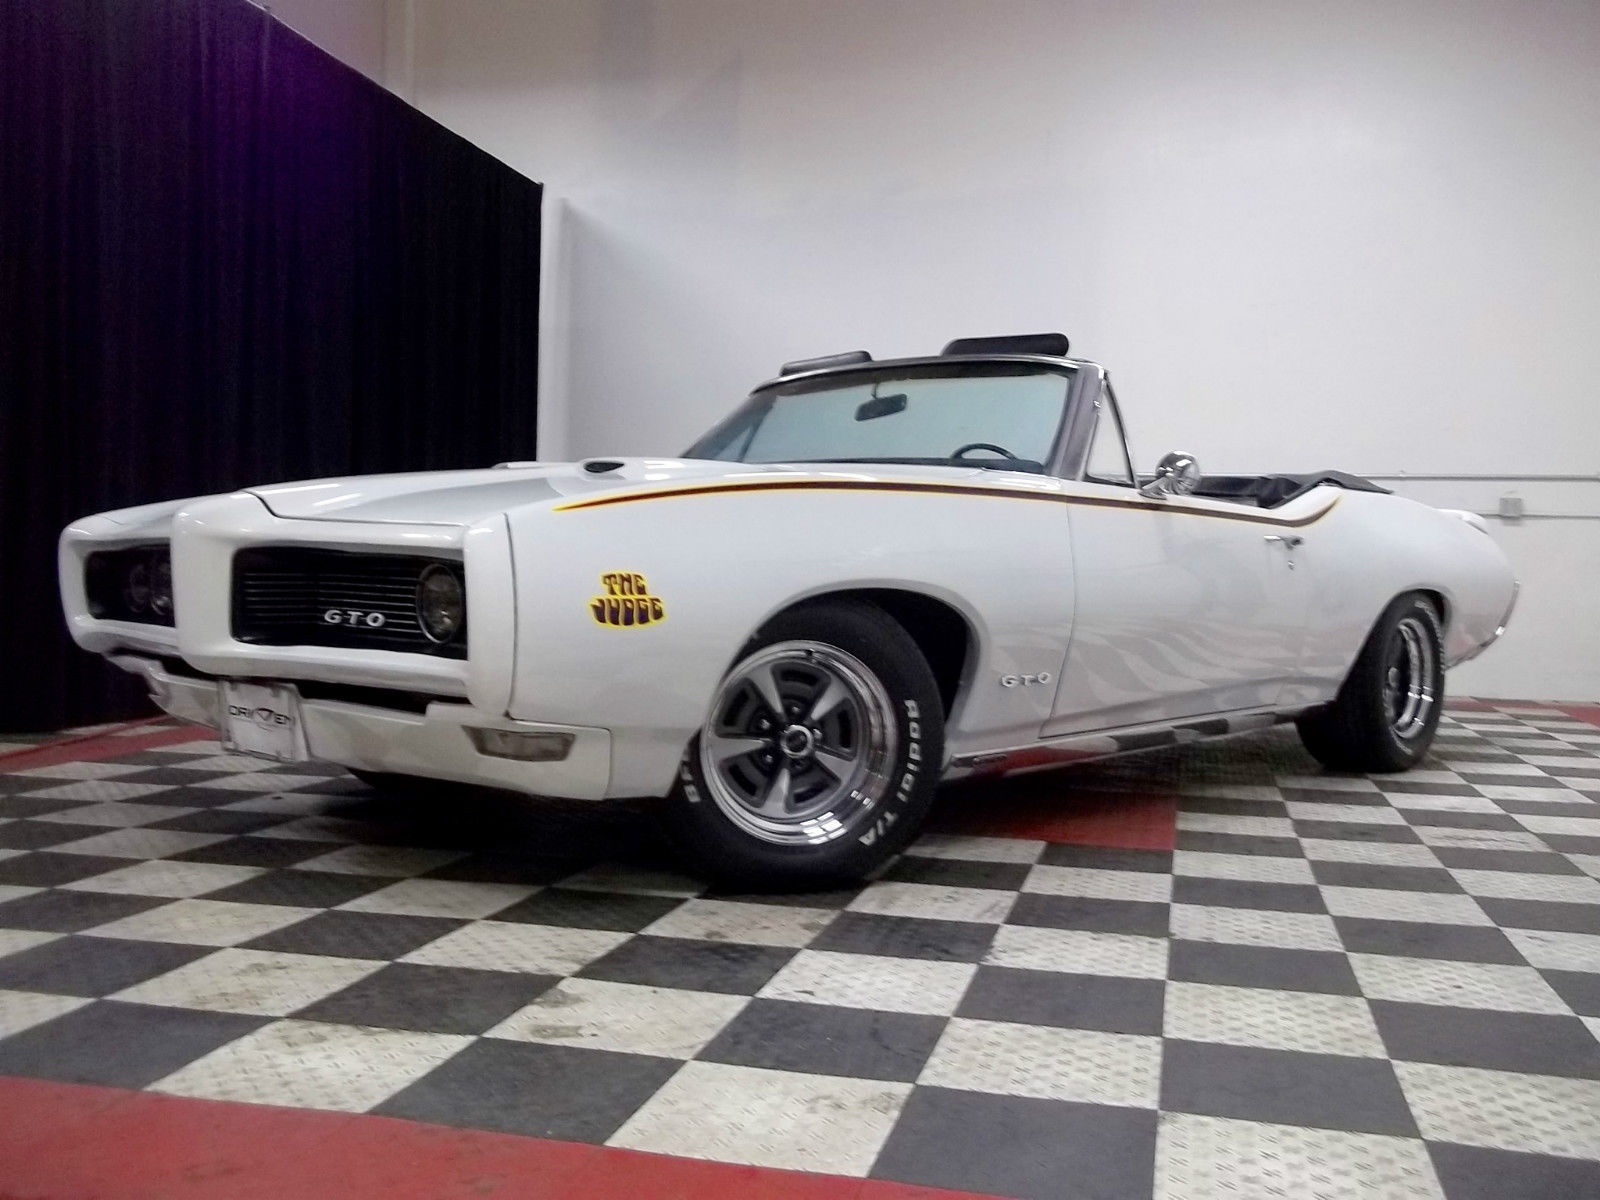 cars for sale by pontiac luxury 1968 pontiac gto judge convertible tribute project cars for sale Â